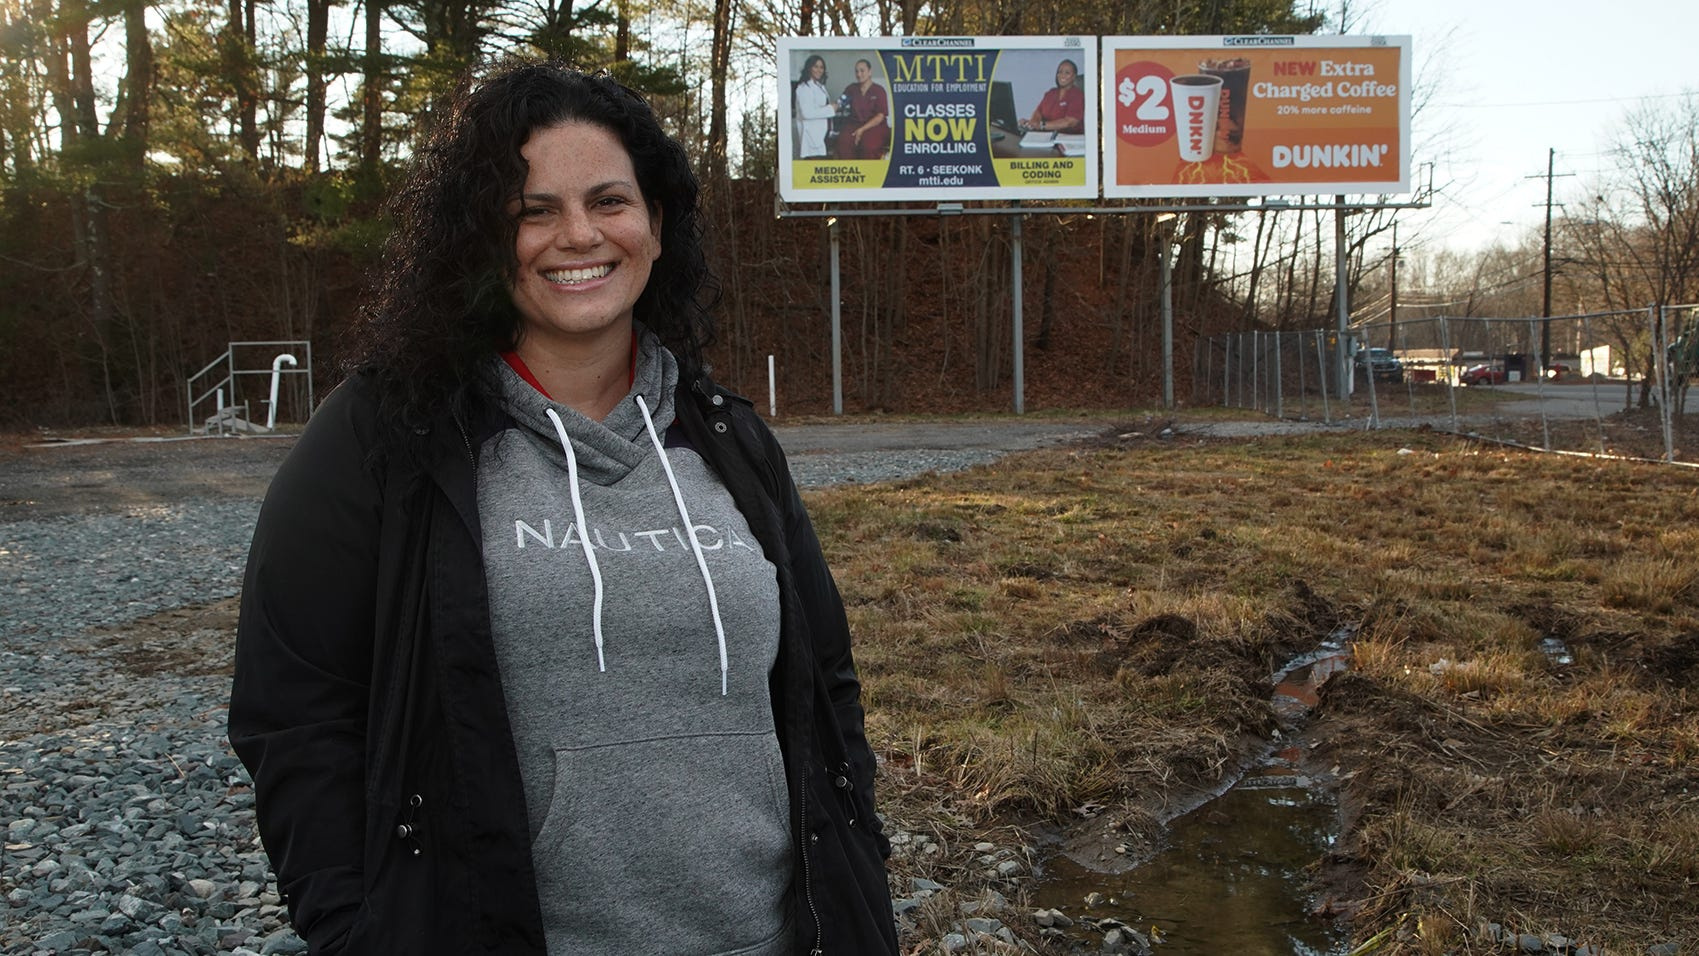 Kyra Fernandez stands on the site of her future retail marijuana store at 354 Winthrop St. in Taunton on Jan. 7, 2021. She is one of the applicants awarded a marijuana license by the Taunton City Council on Dec. 28, 2020.